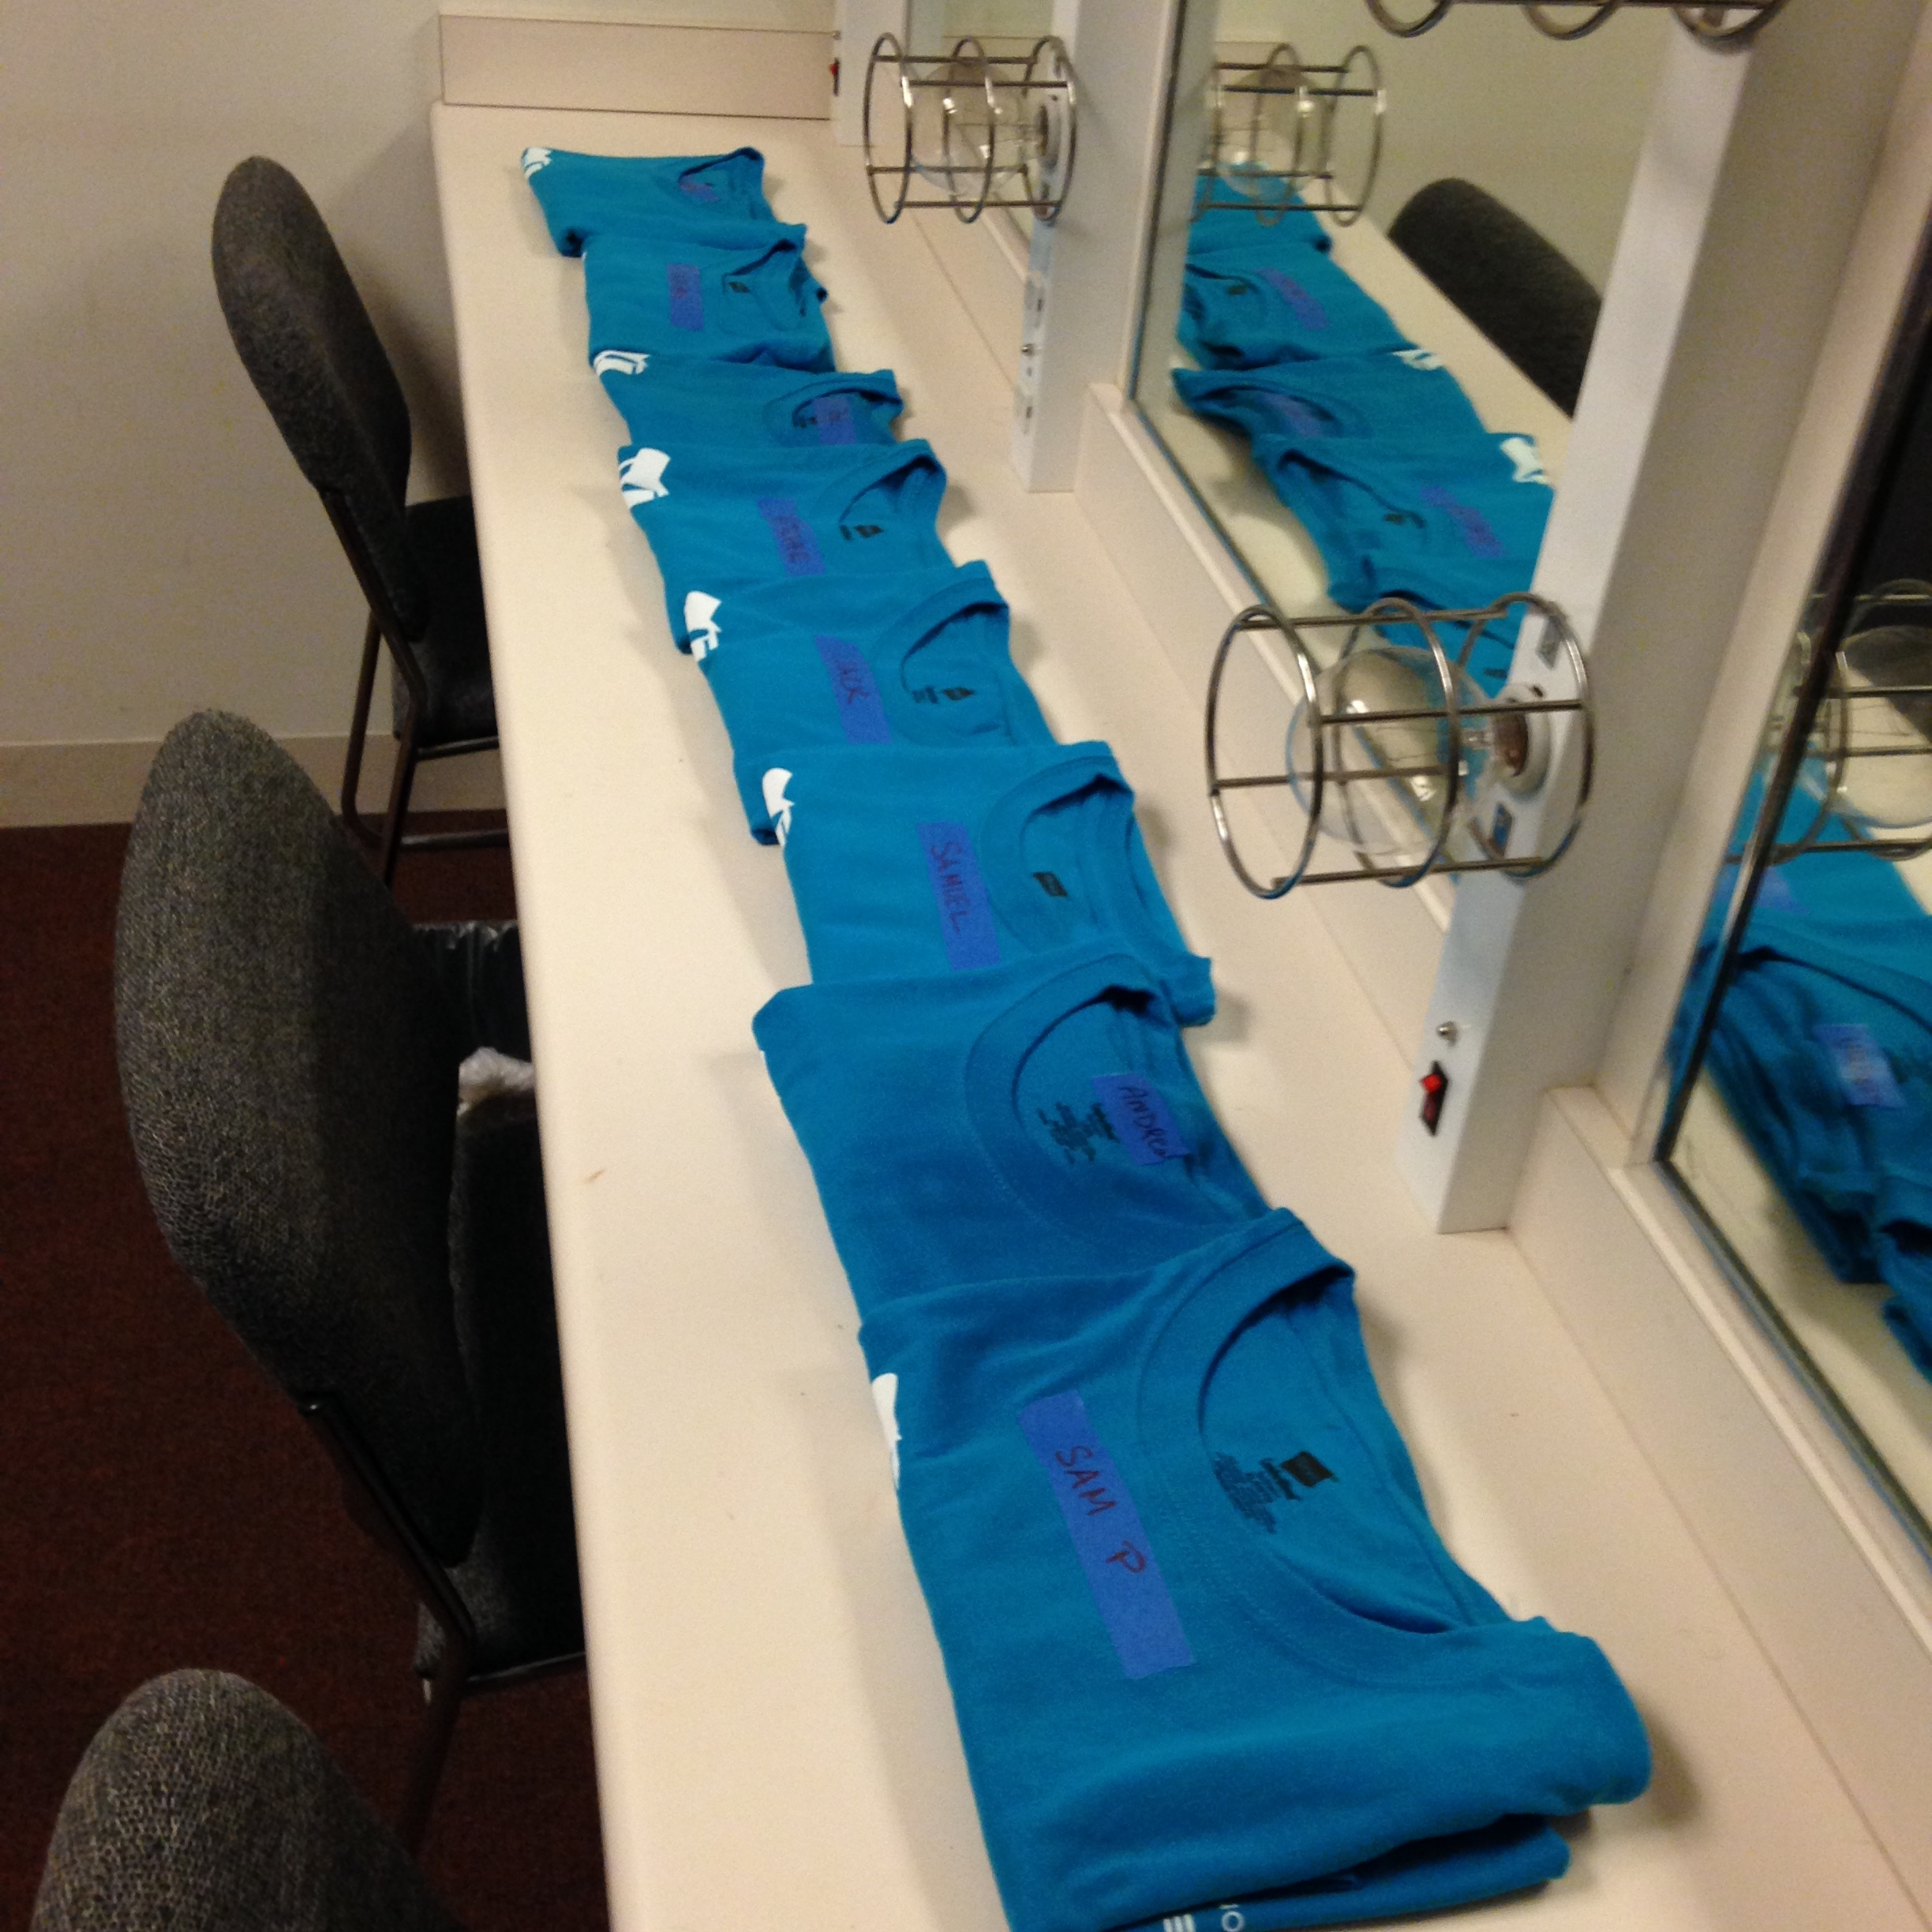 T-shirts lined up and waiting in the Boys' Dressing Room.